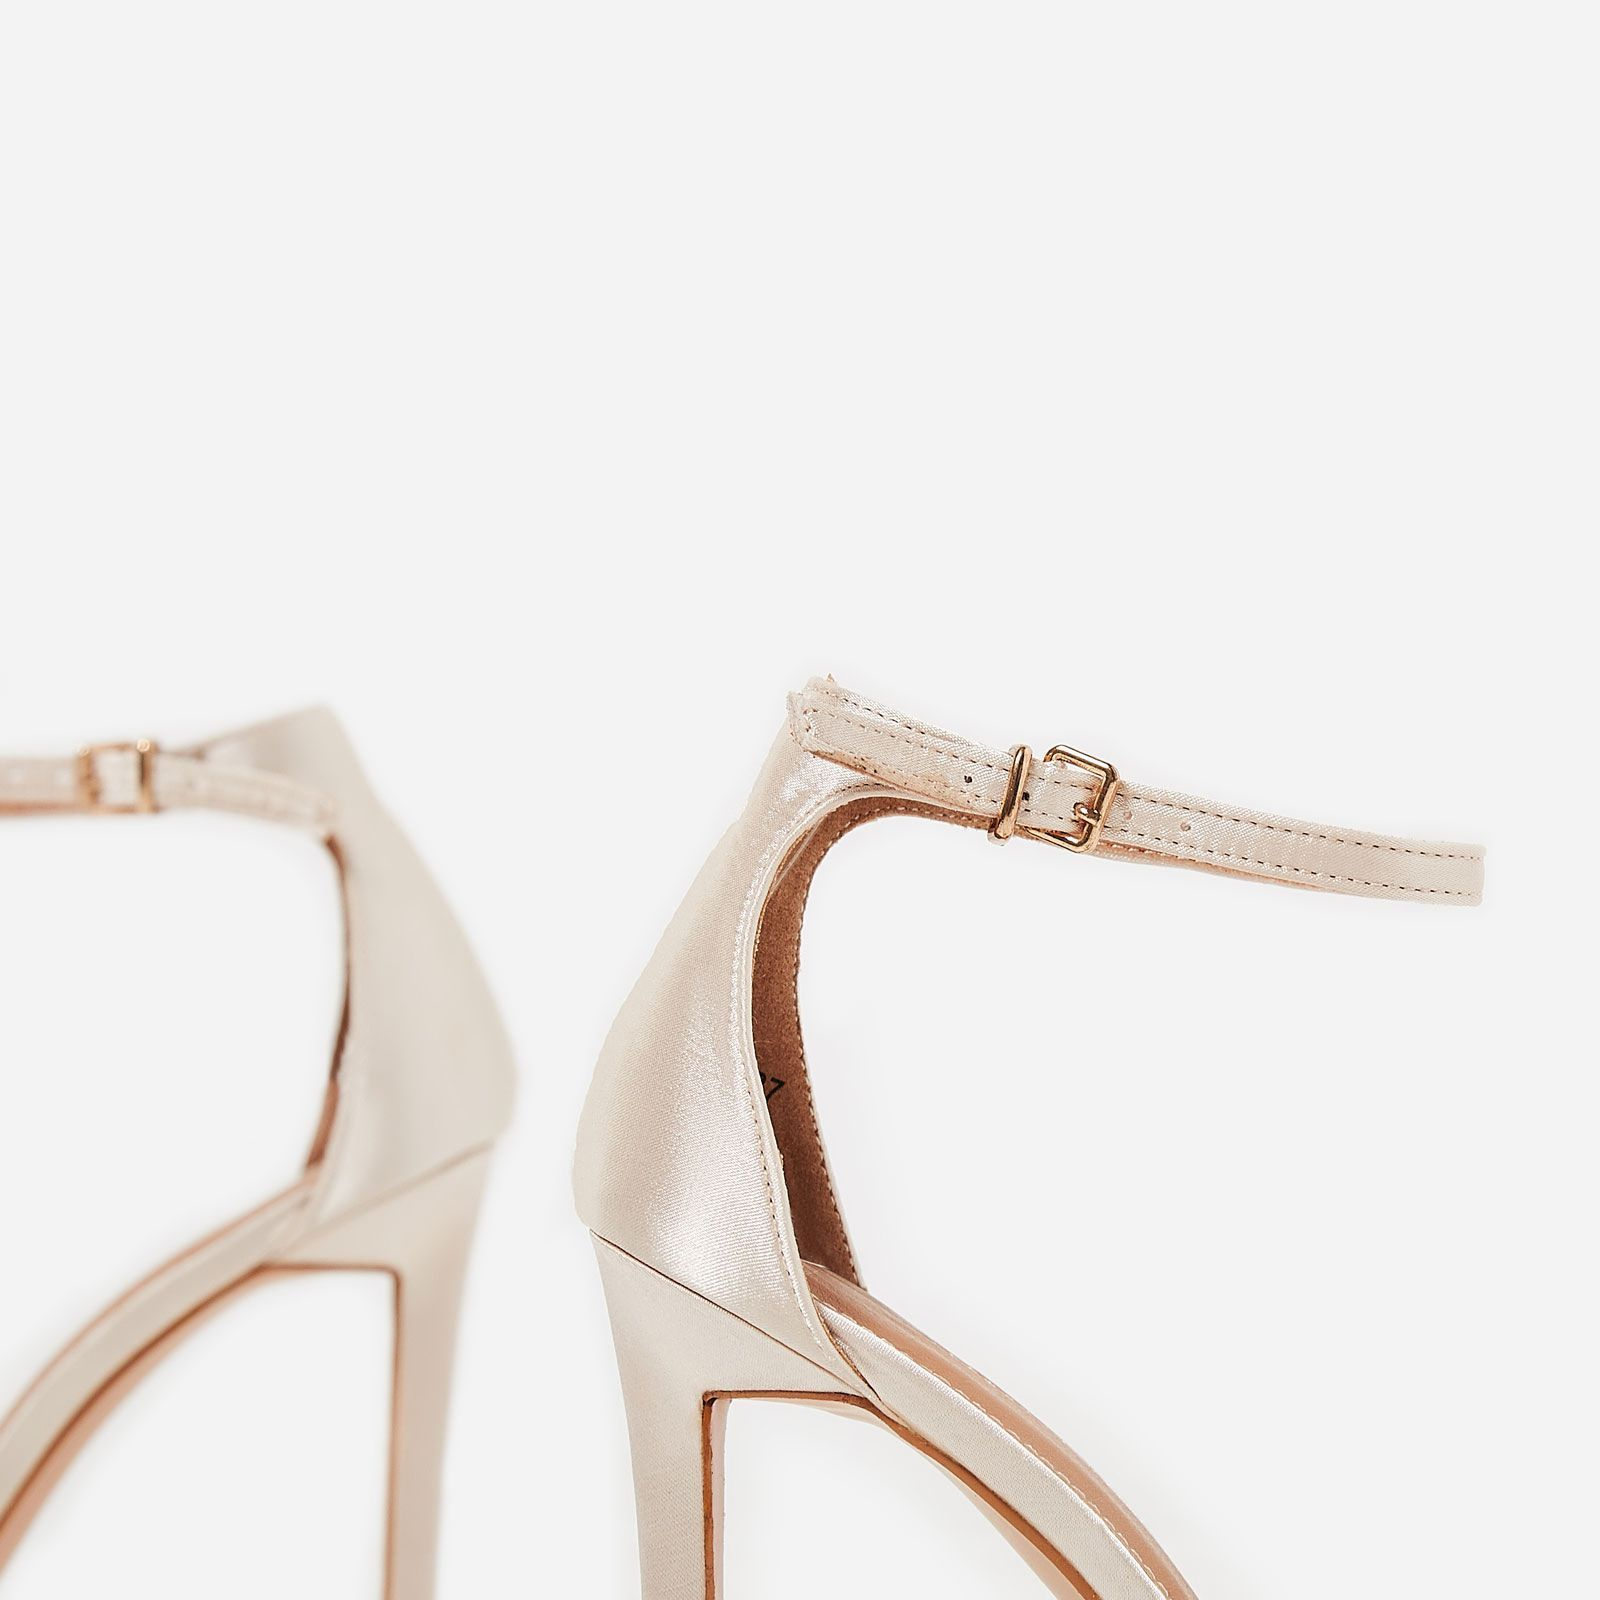 【送料関税込み】Isabel Barely There Heel In Nude EGO☆ヒール